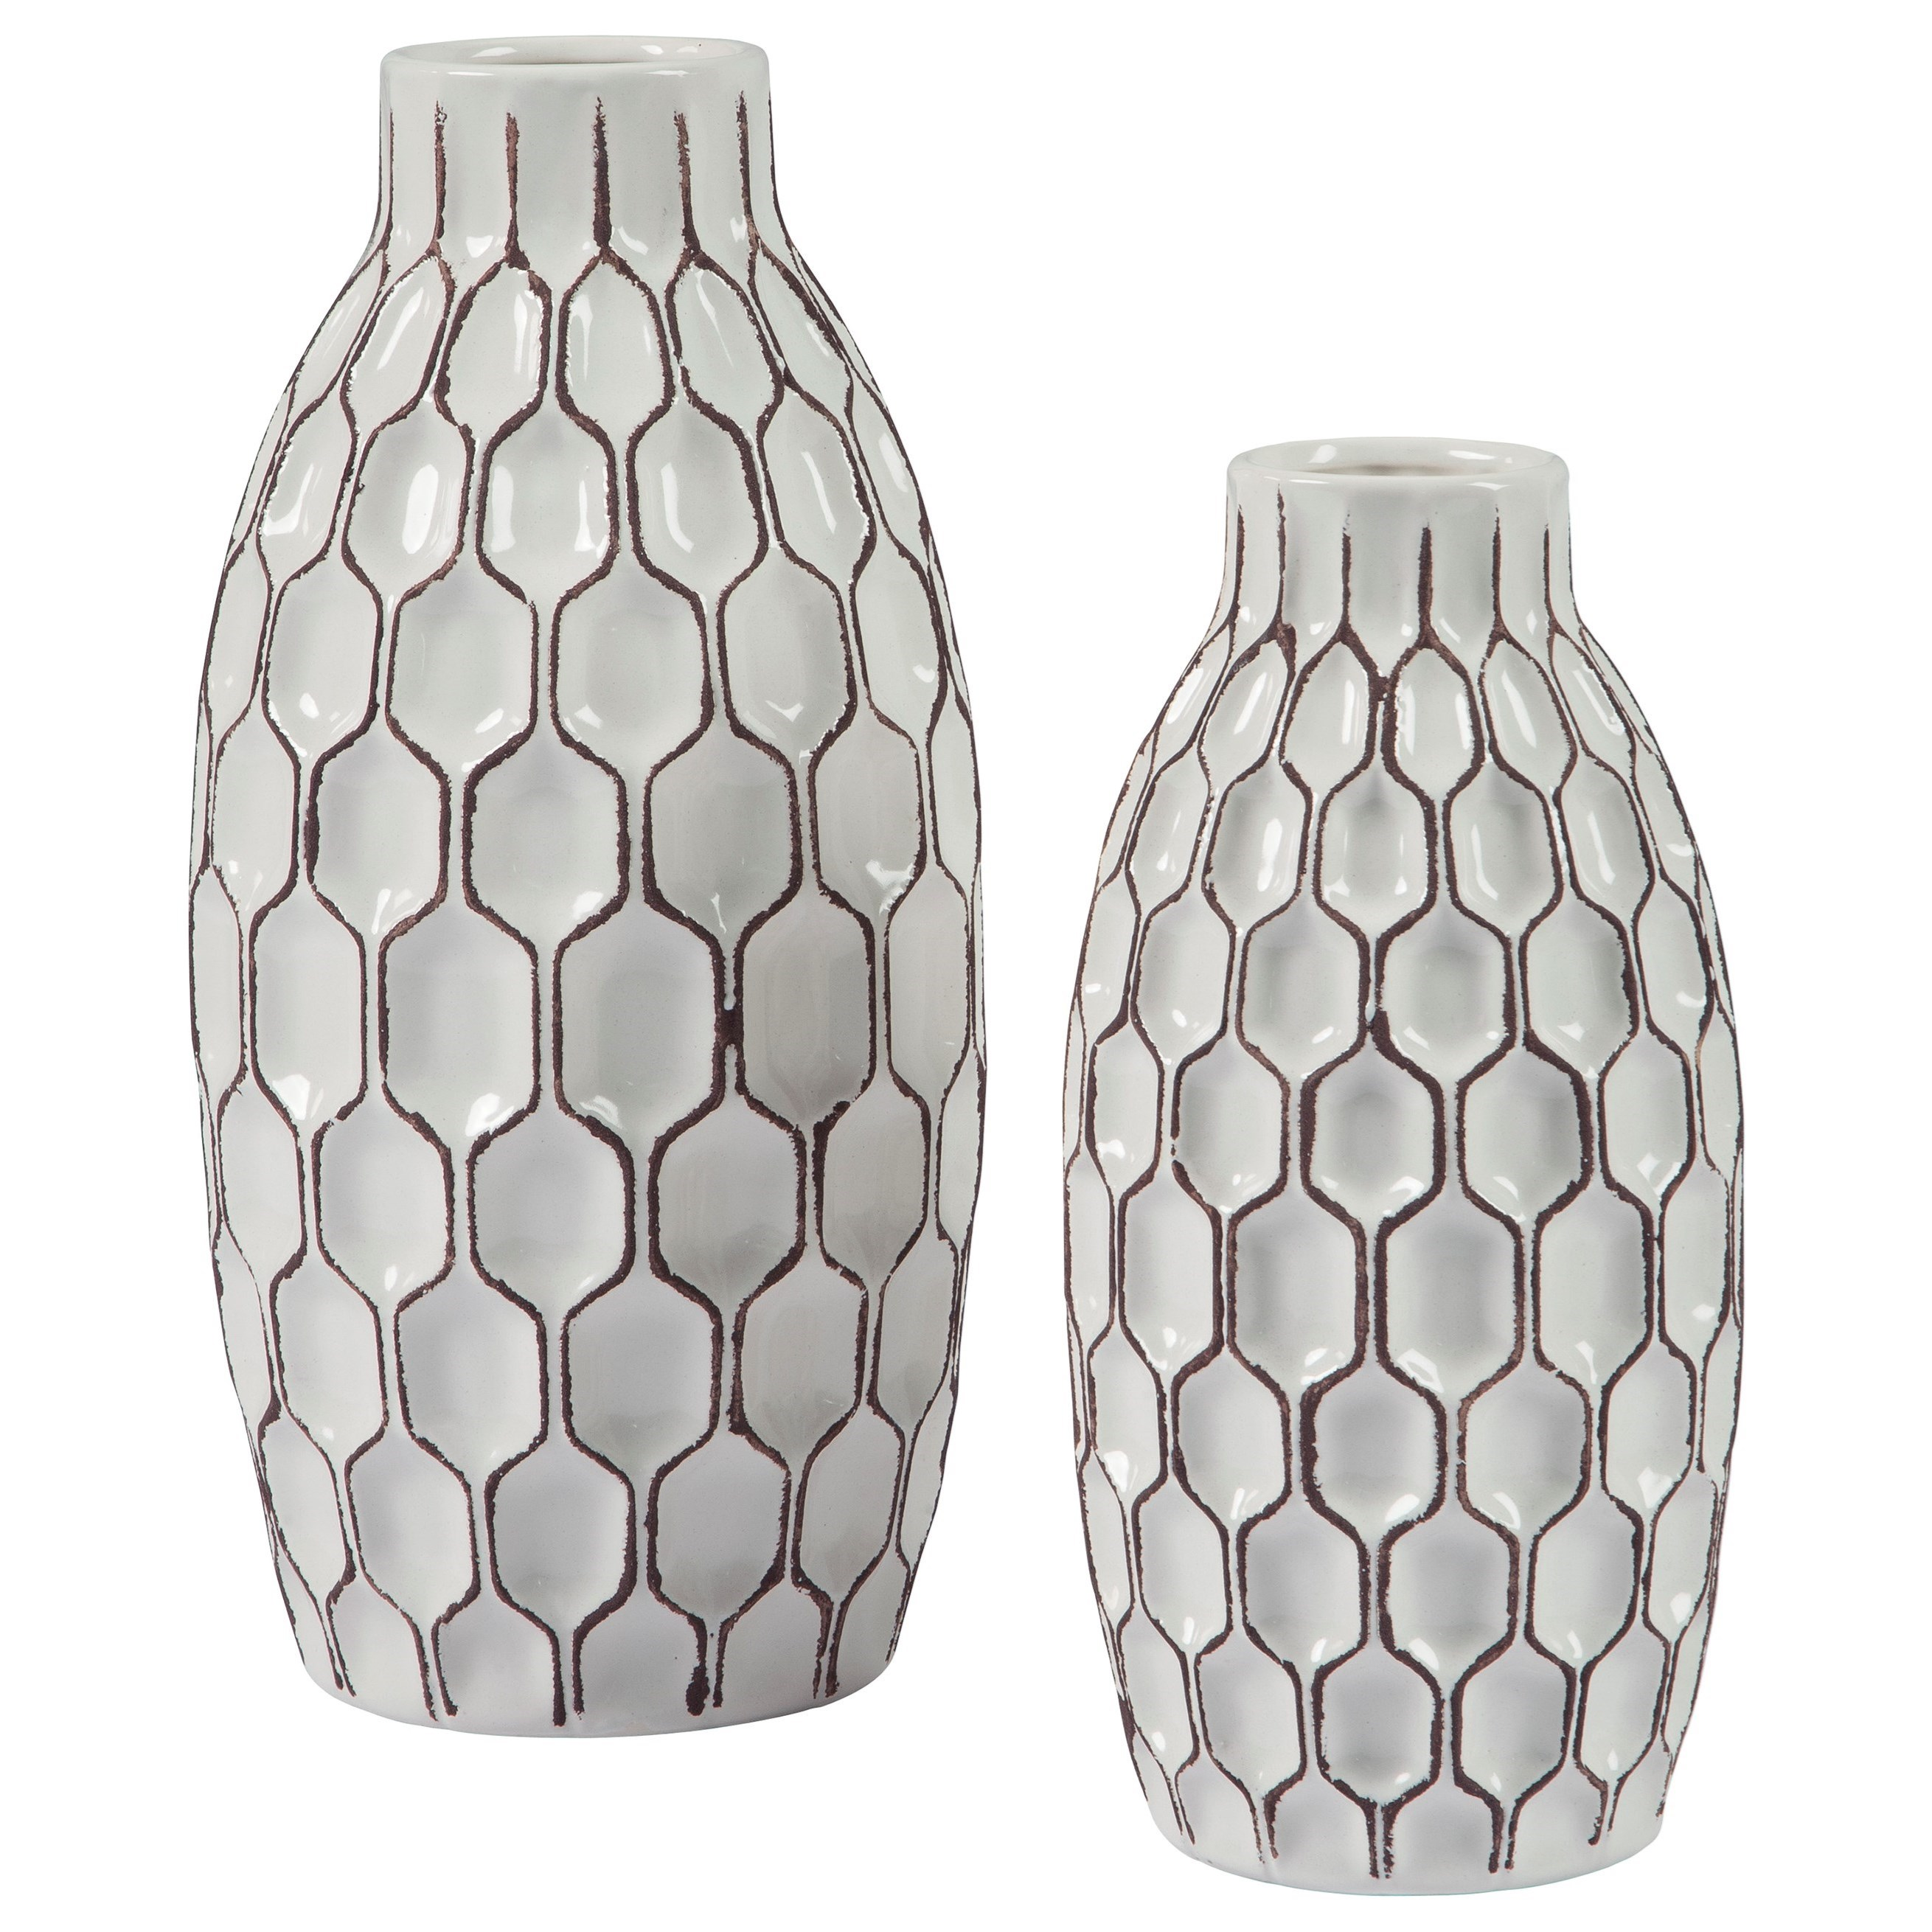 Accents 2-Piece Dionna White Vase Set by Signature Design by Ashley at Lapeer Furniture & Mattress Center